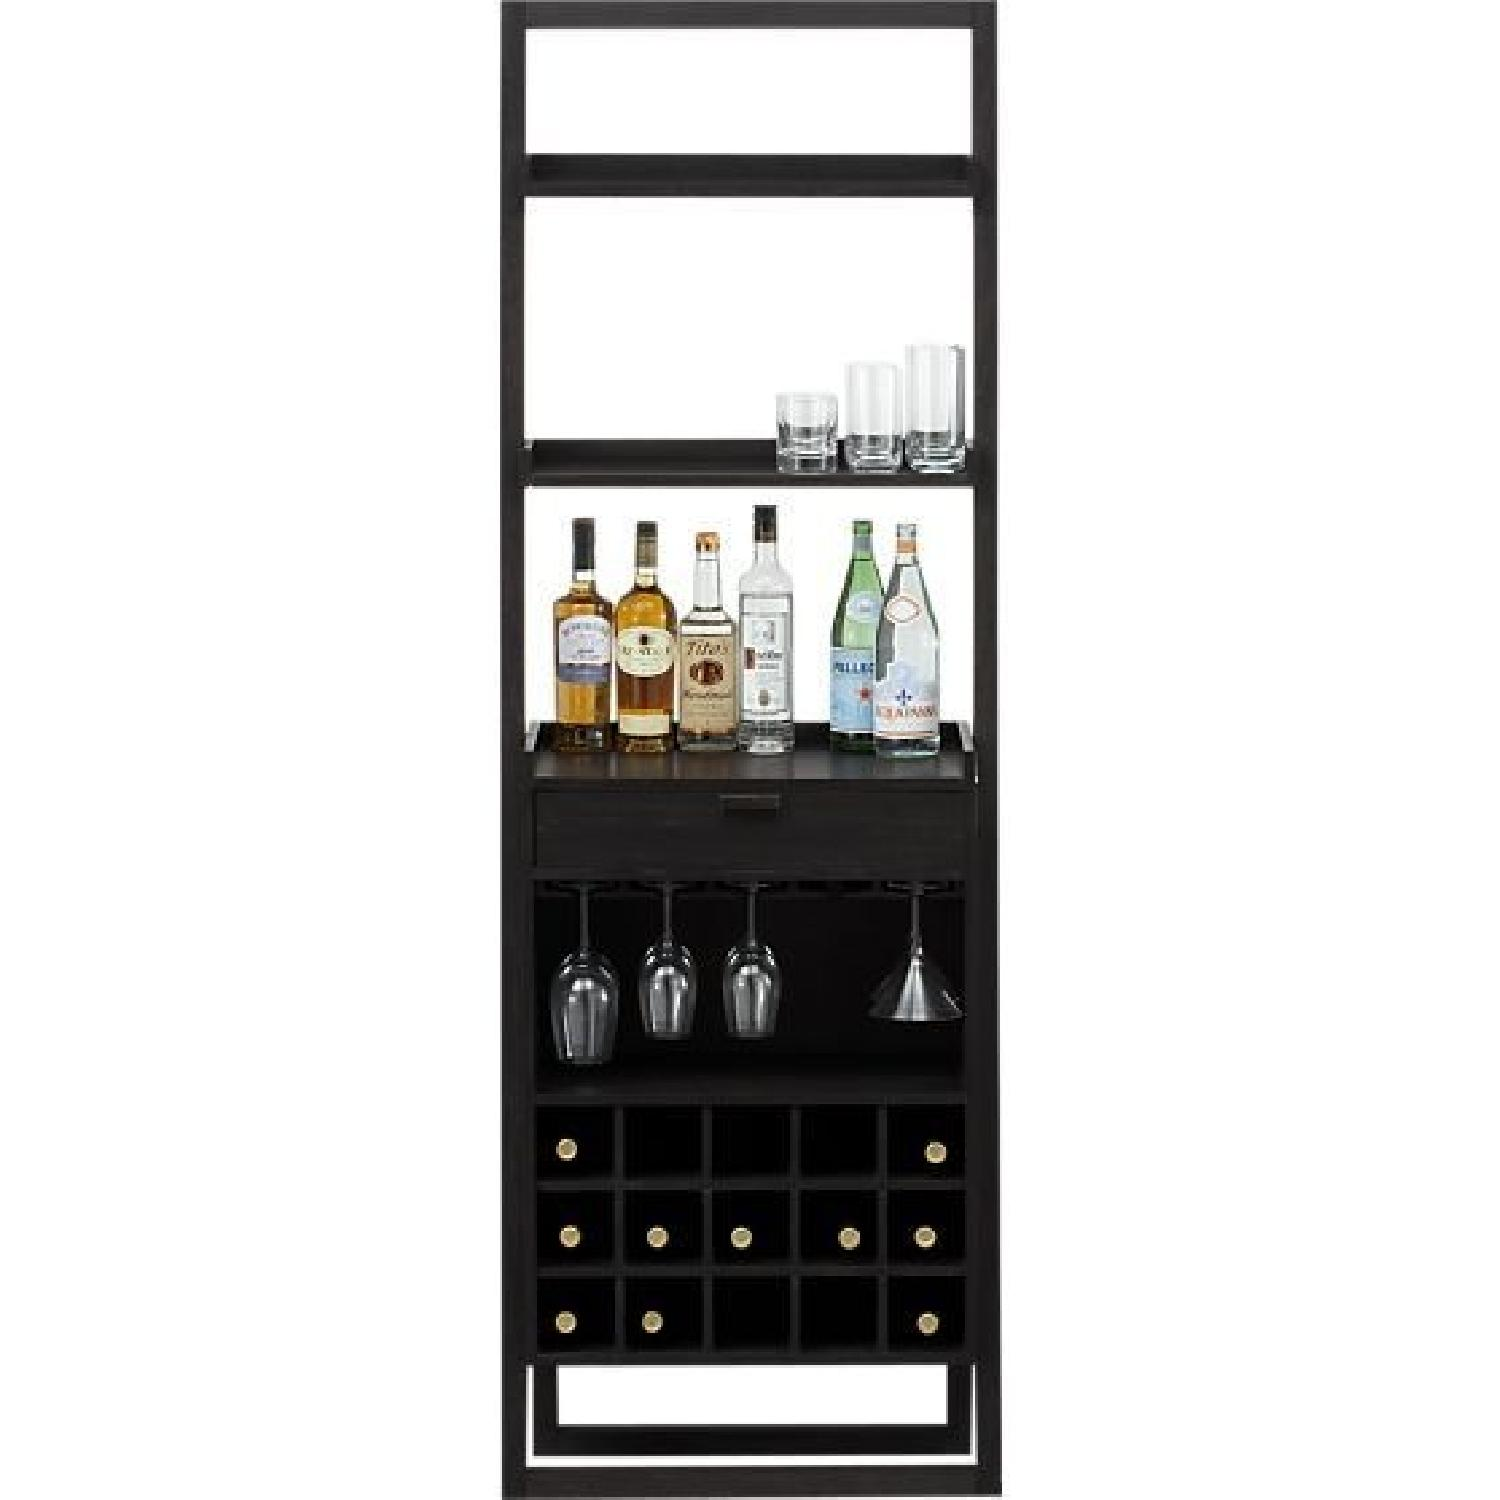 Crate & Barrel Leaning Bar